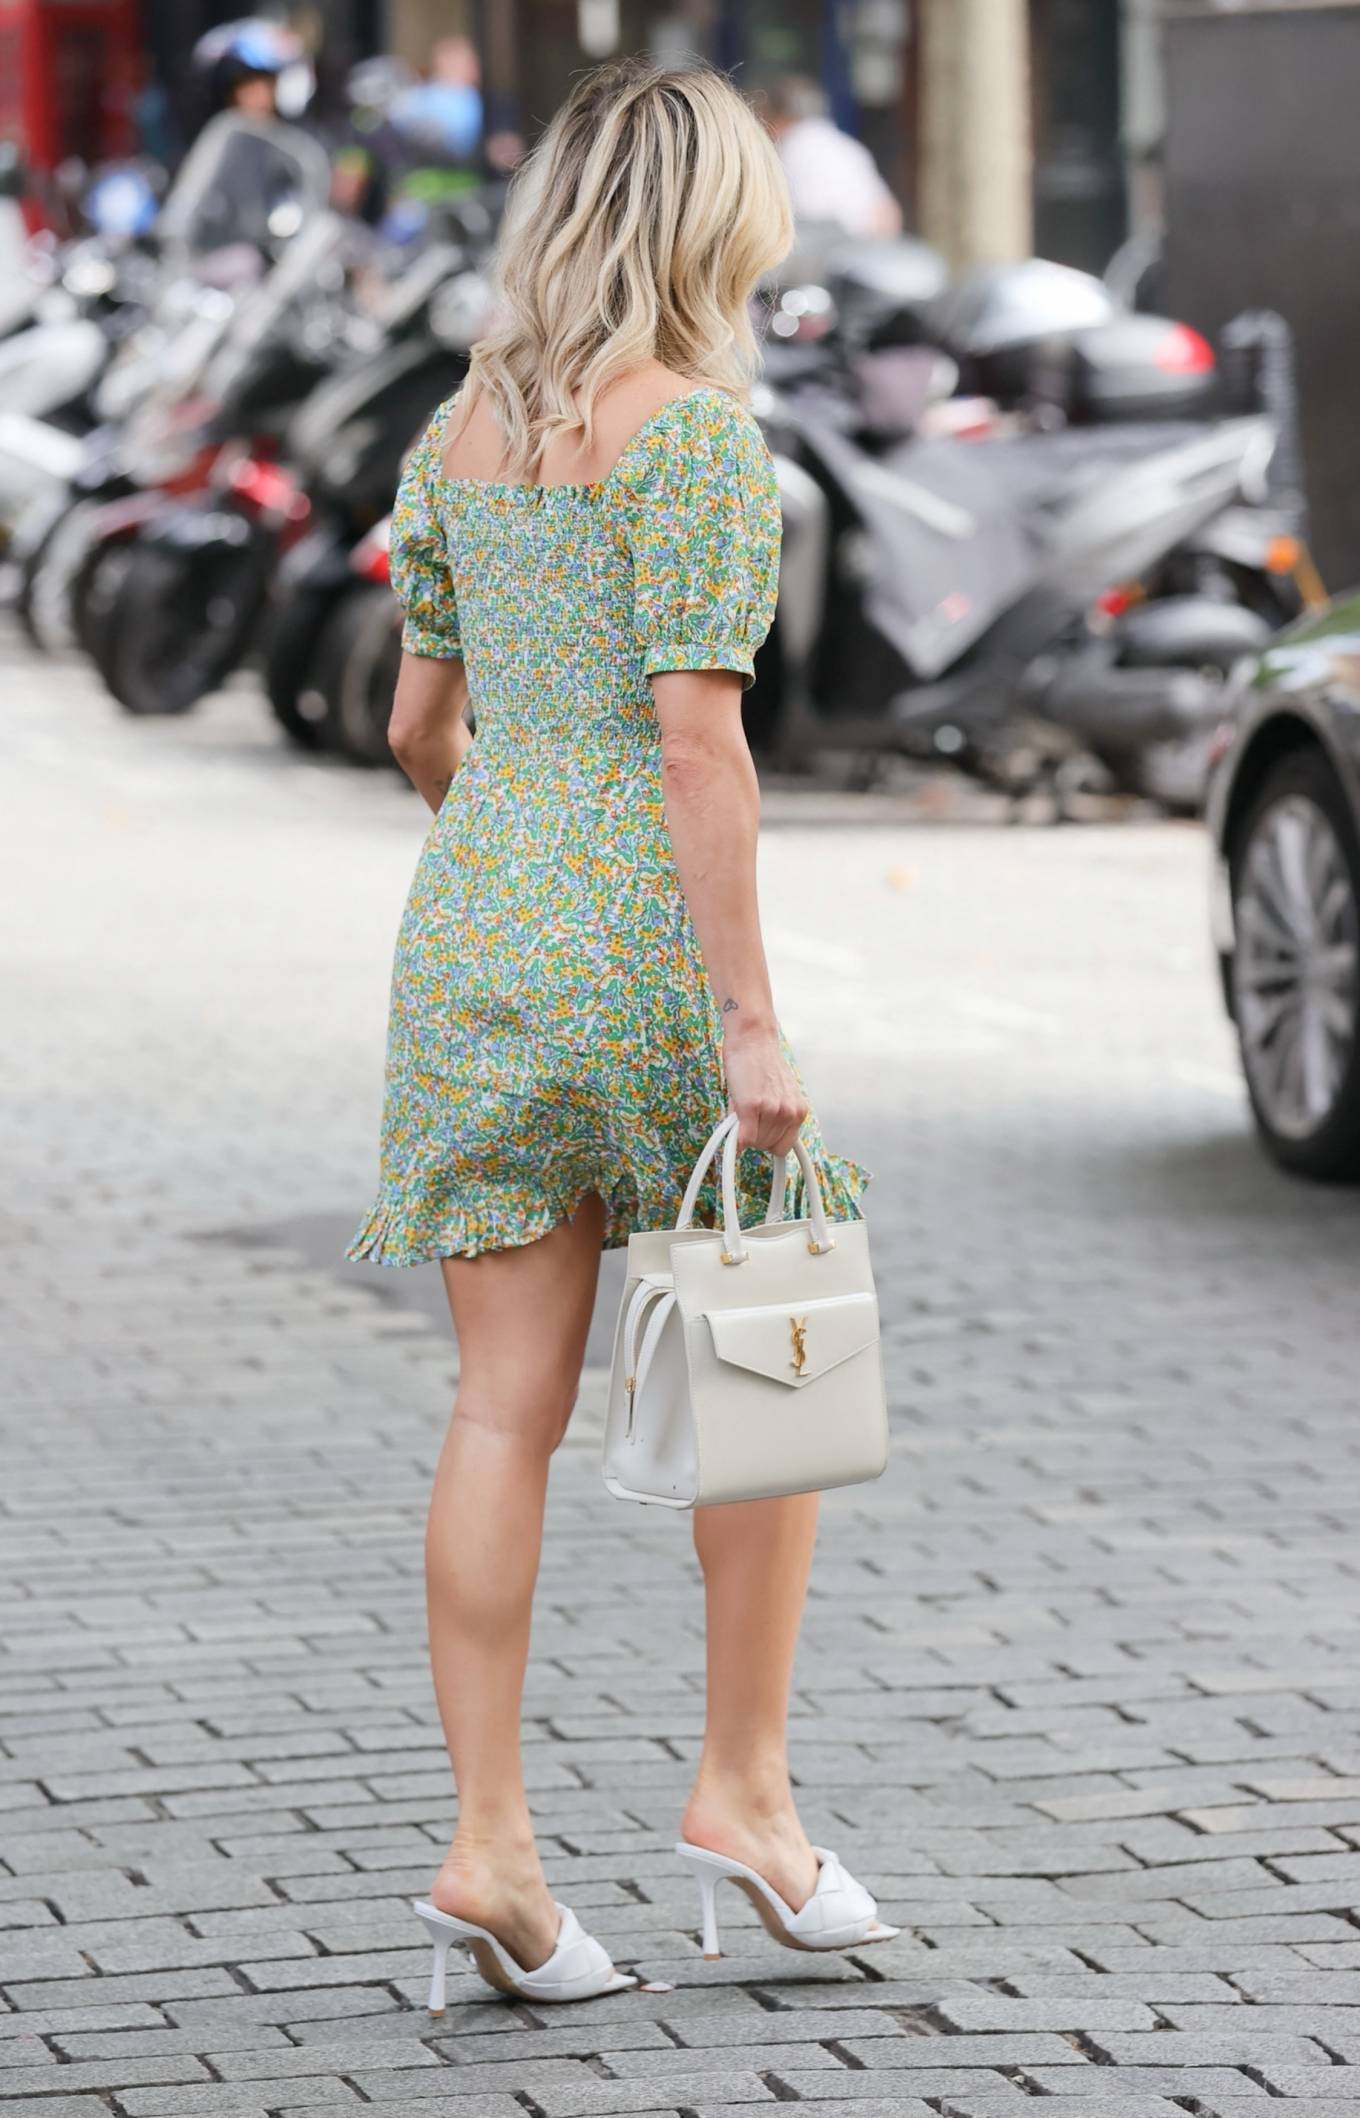 Ashley Roberts 2021 : Ashley Roberts – Seen at Heart radio in floaty floral mini dress in London-09